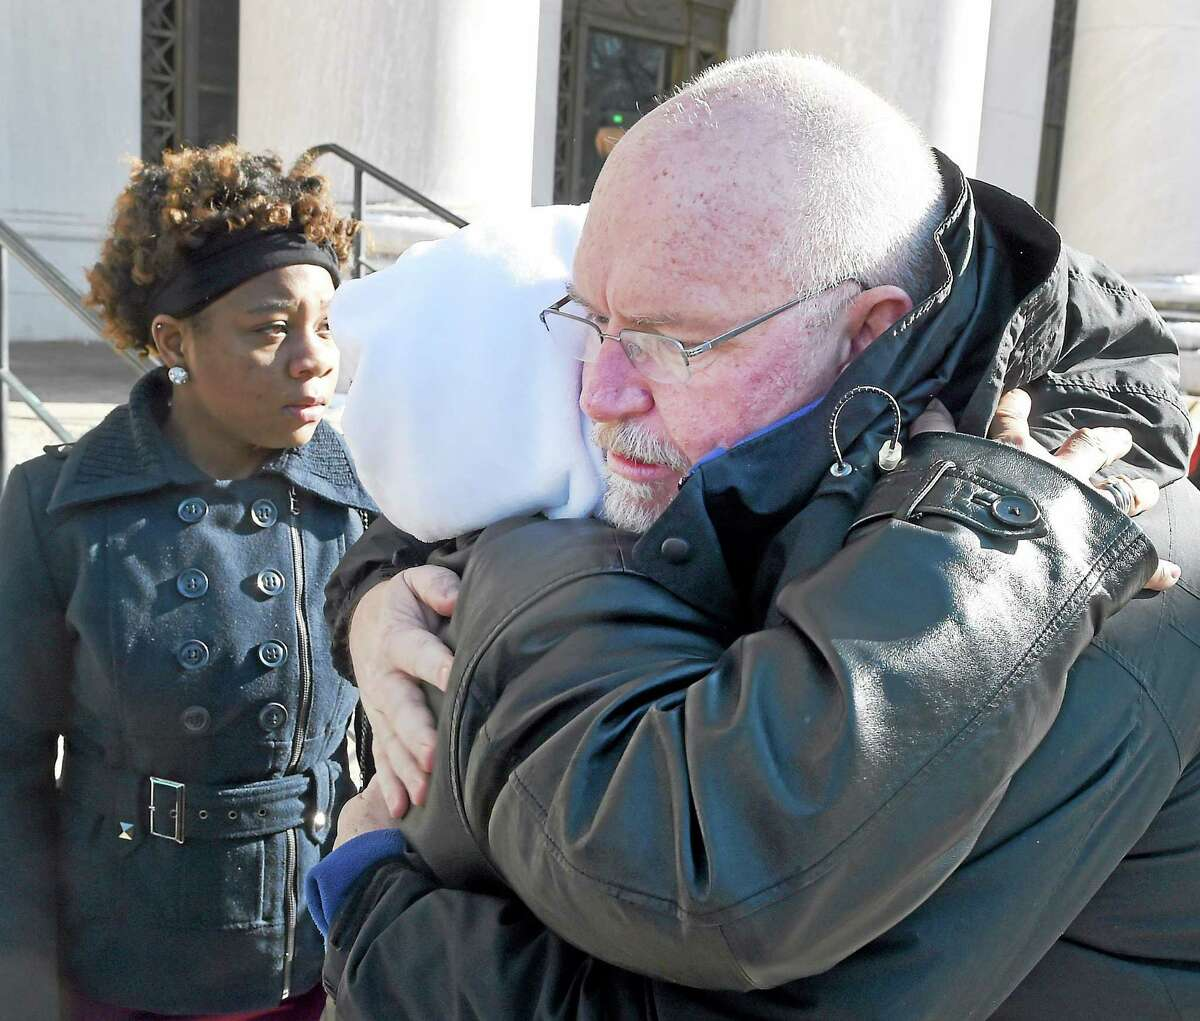 Lynn Roberson of New Haven and FBI Agent James Lawton hug outside the Federal Courthouse in New Haven after Hector Natal of New Haven gets life imprisonment sentence Wednesday, February 25, 2015 for the 2011 triple fatal arson fire at a New Haven apartment building. Roberson's sister Wanda was killed in the fire.